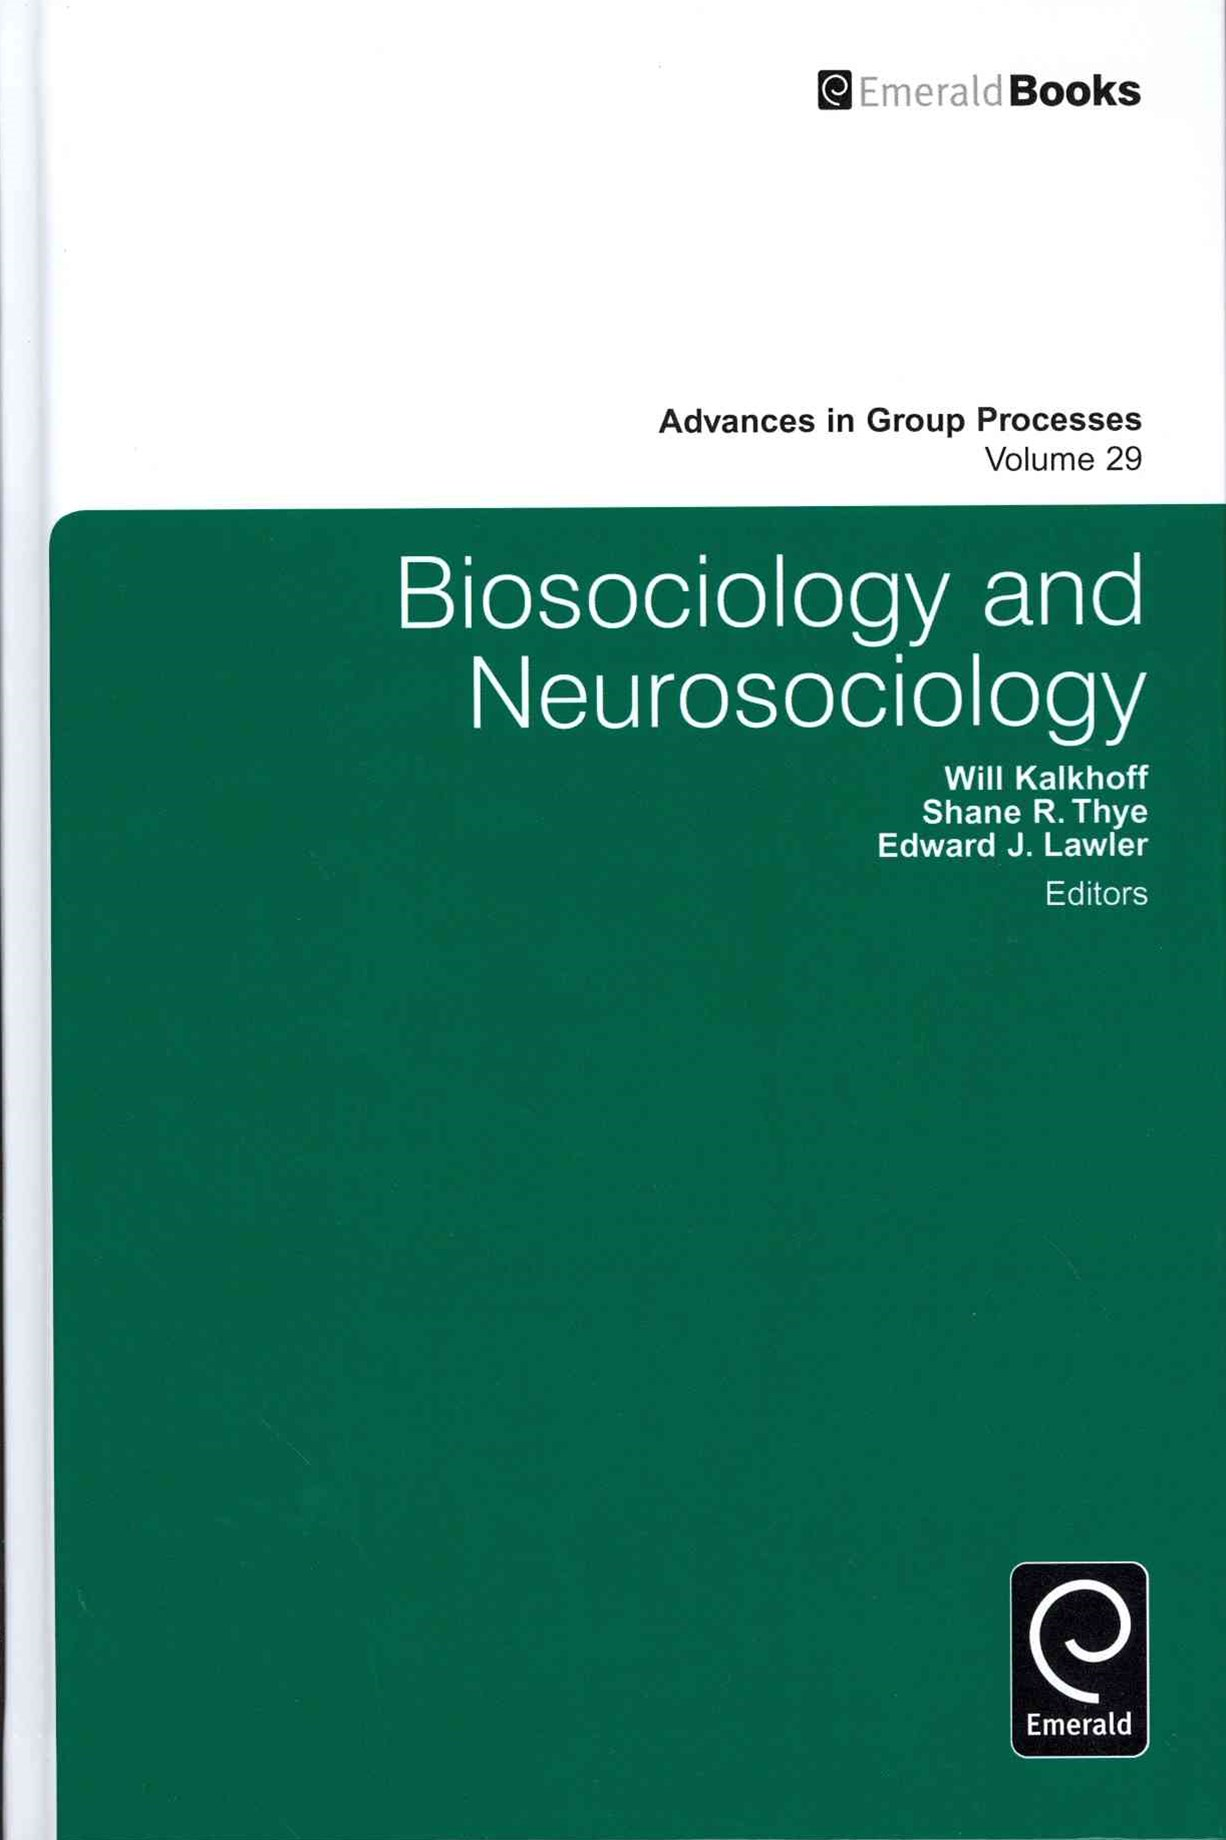 Biosociology and Neurosociology